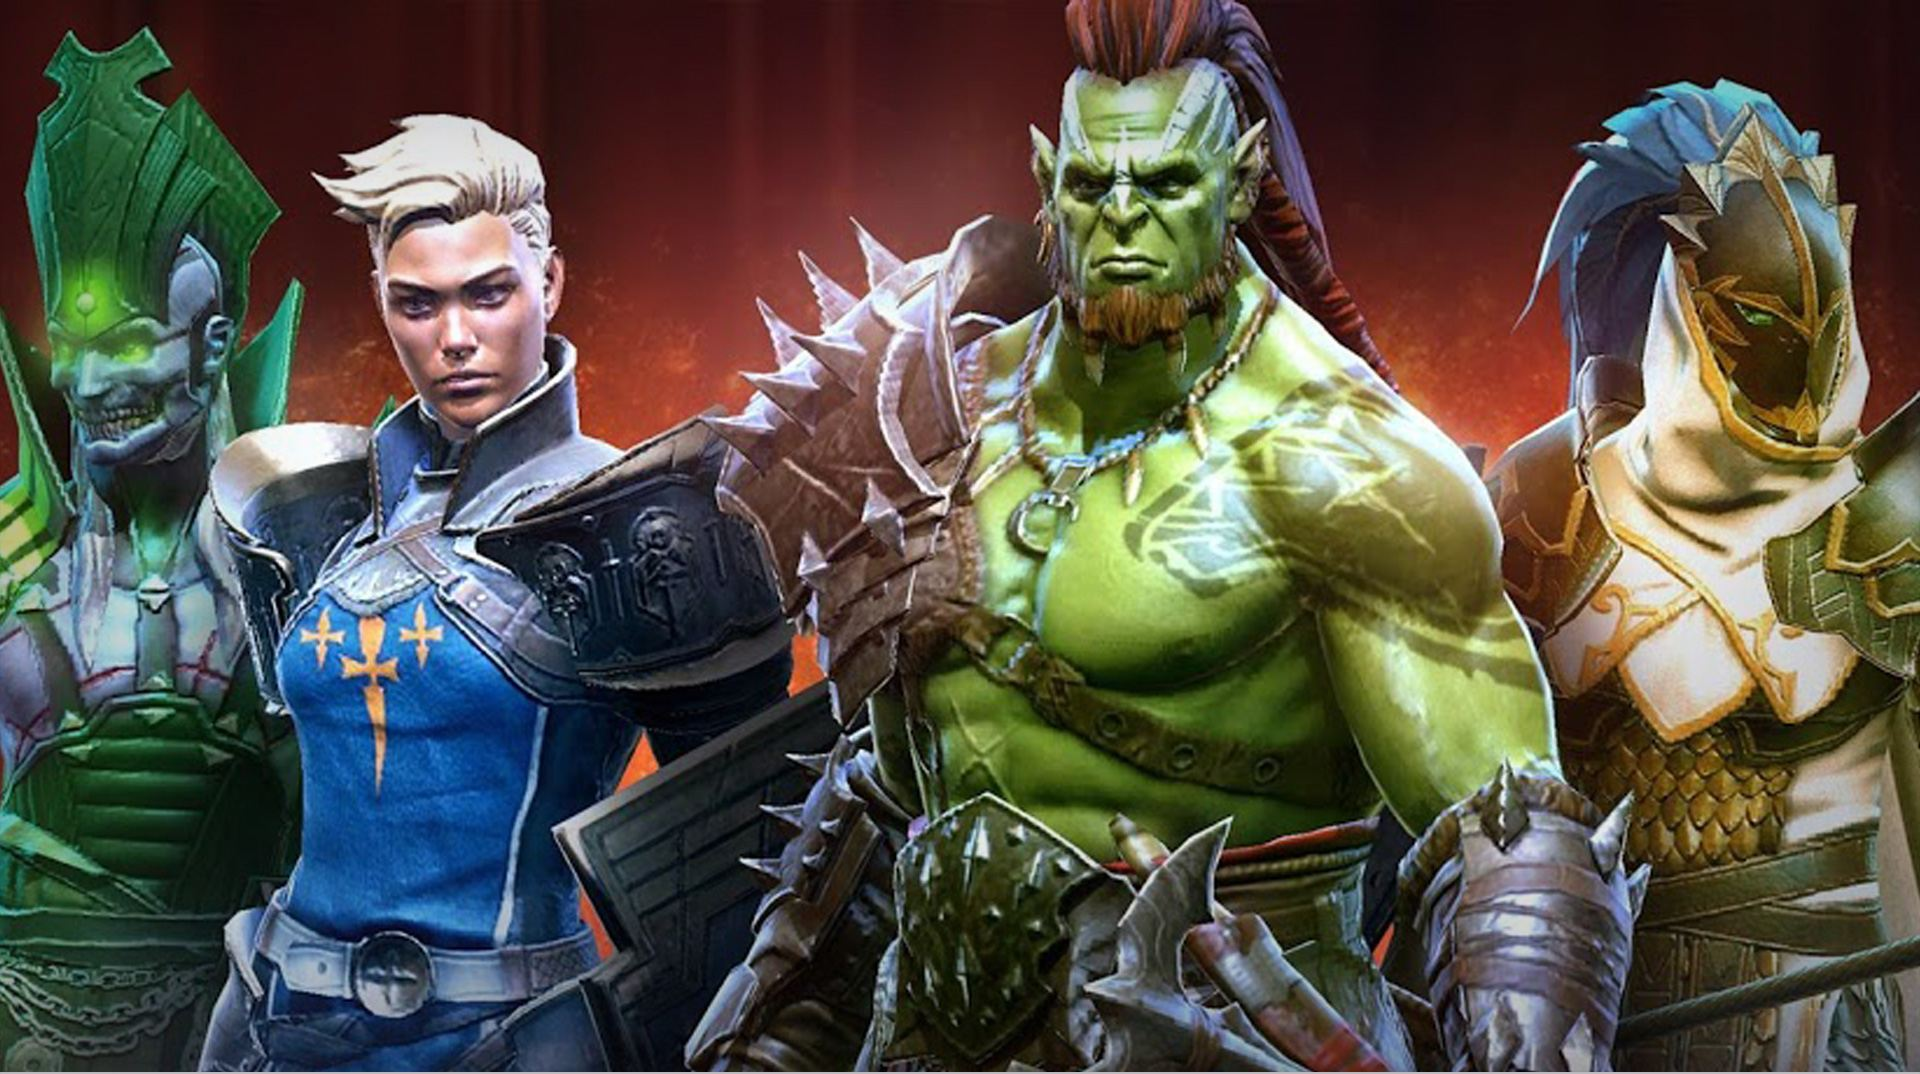 Download RAID: Shadow Legends on PC with BlueStacks